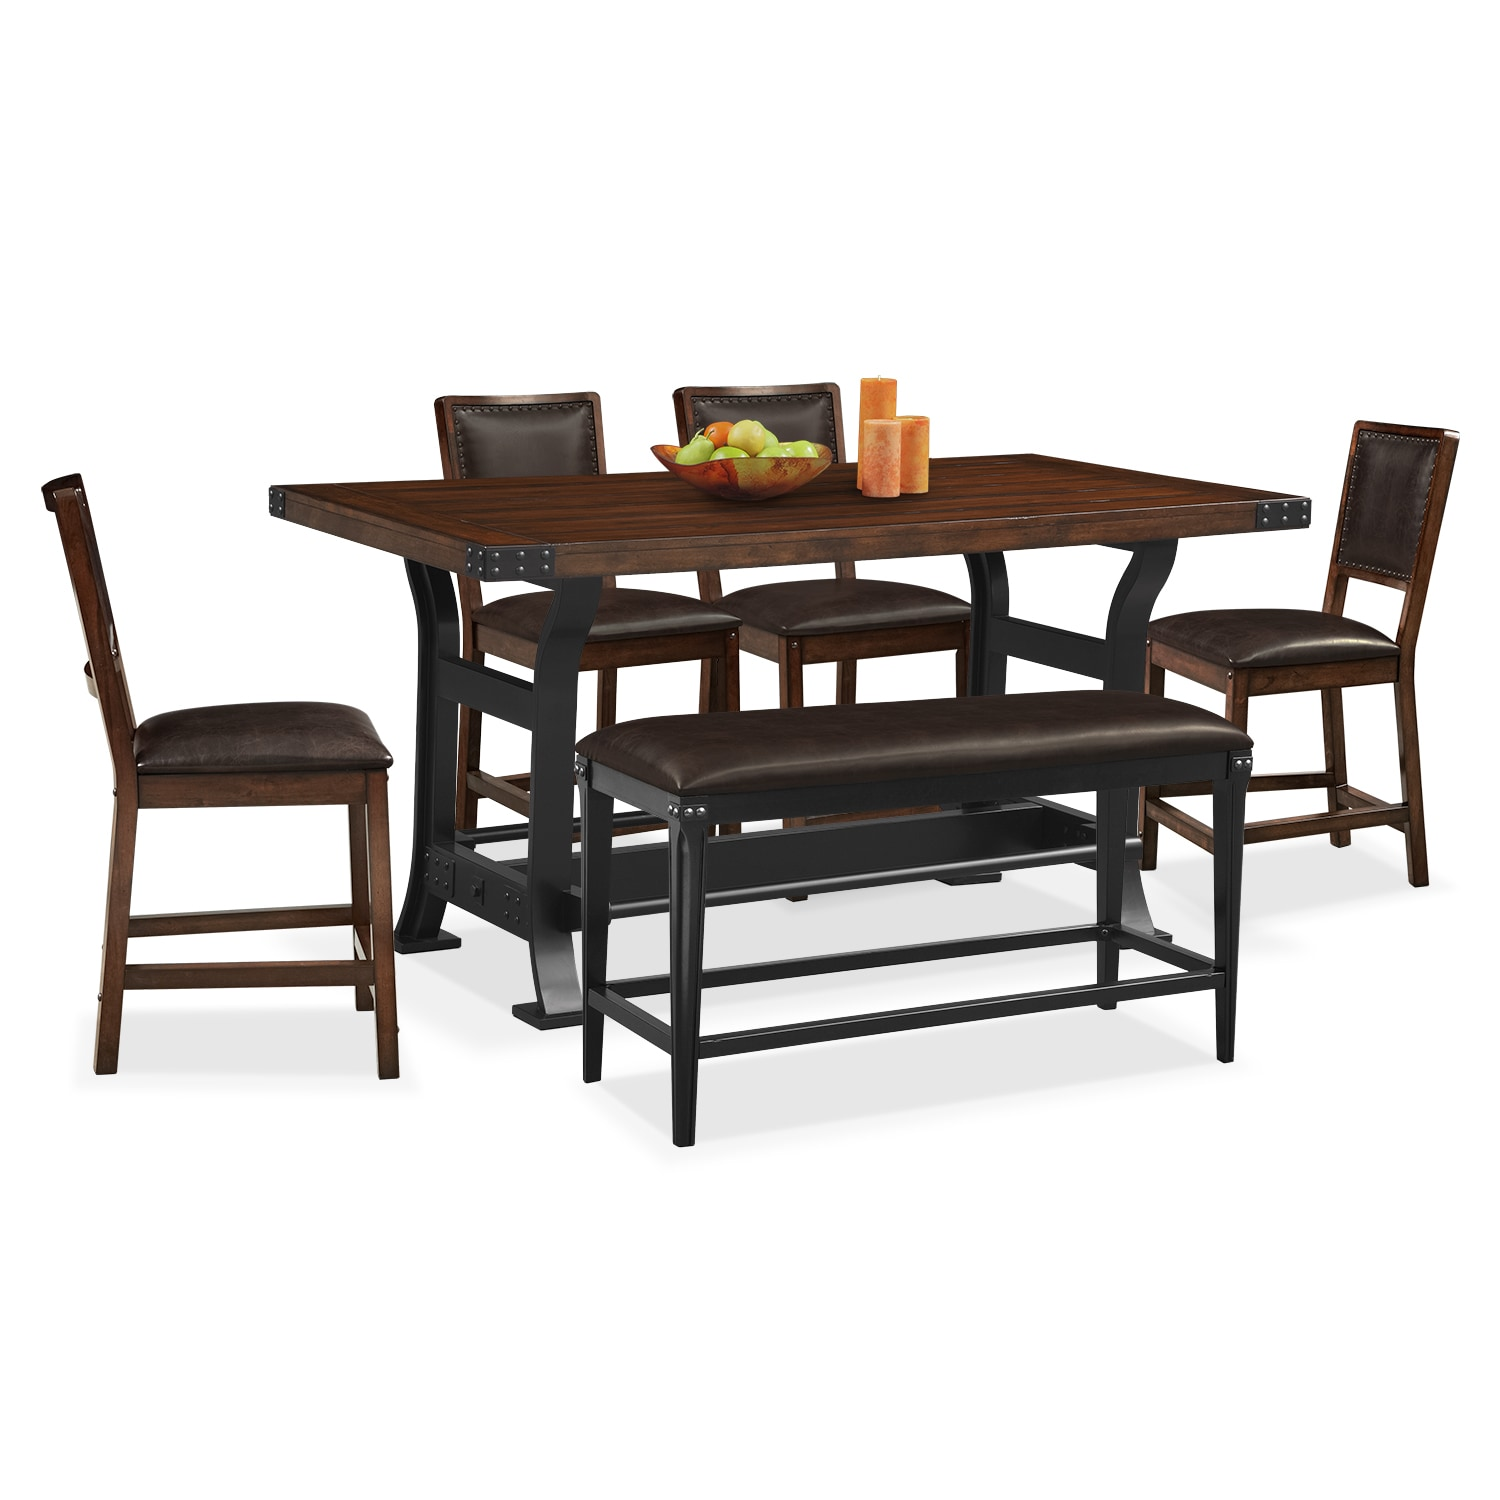 Dining Table With Bench And Chairs Newcastle Counter Height Dining Table 4 Side Chairs And